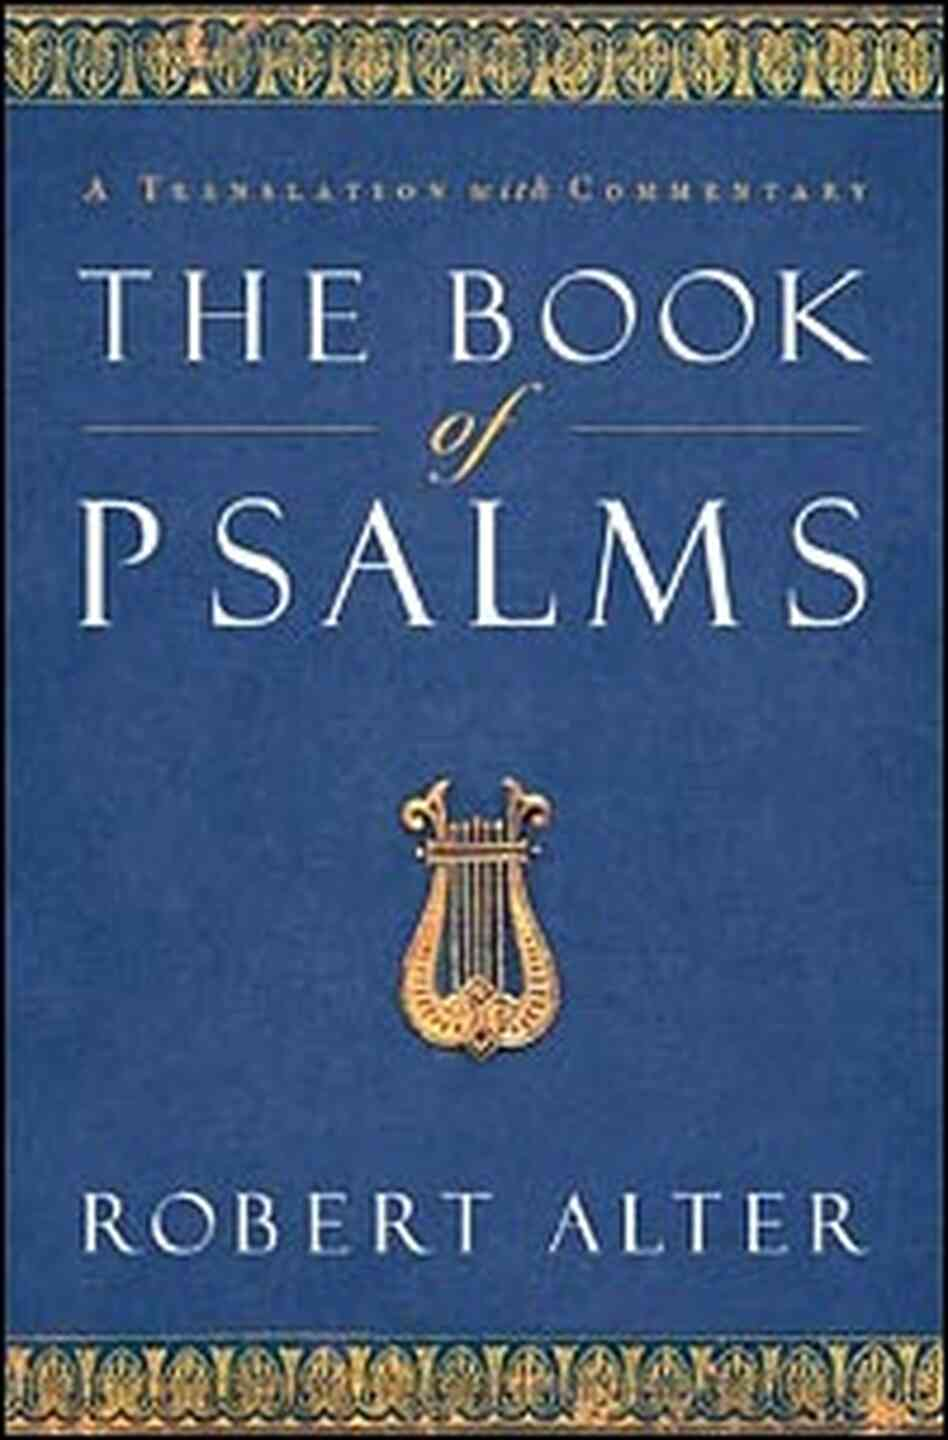 'The Book of Psalms'